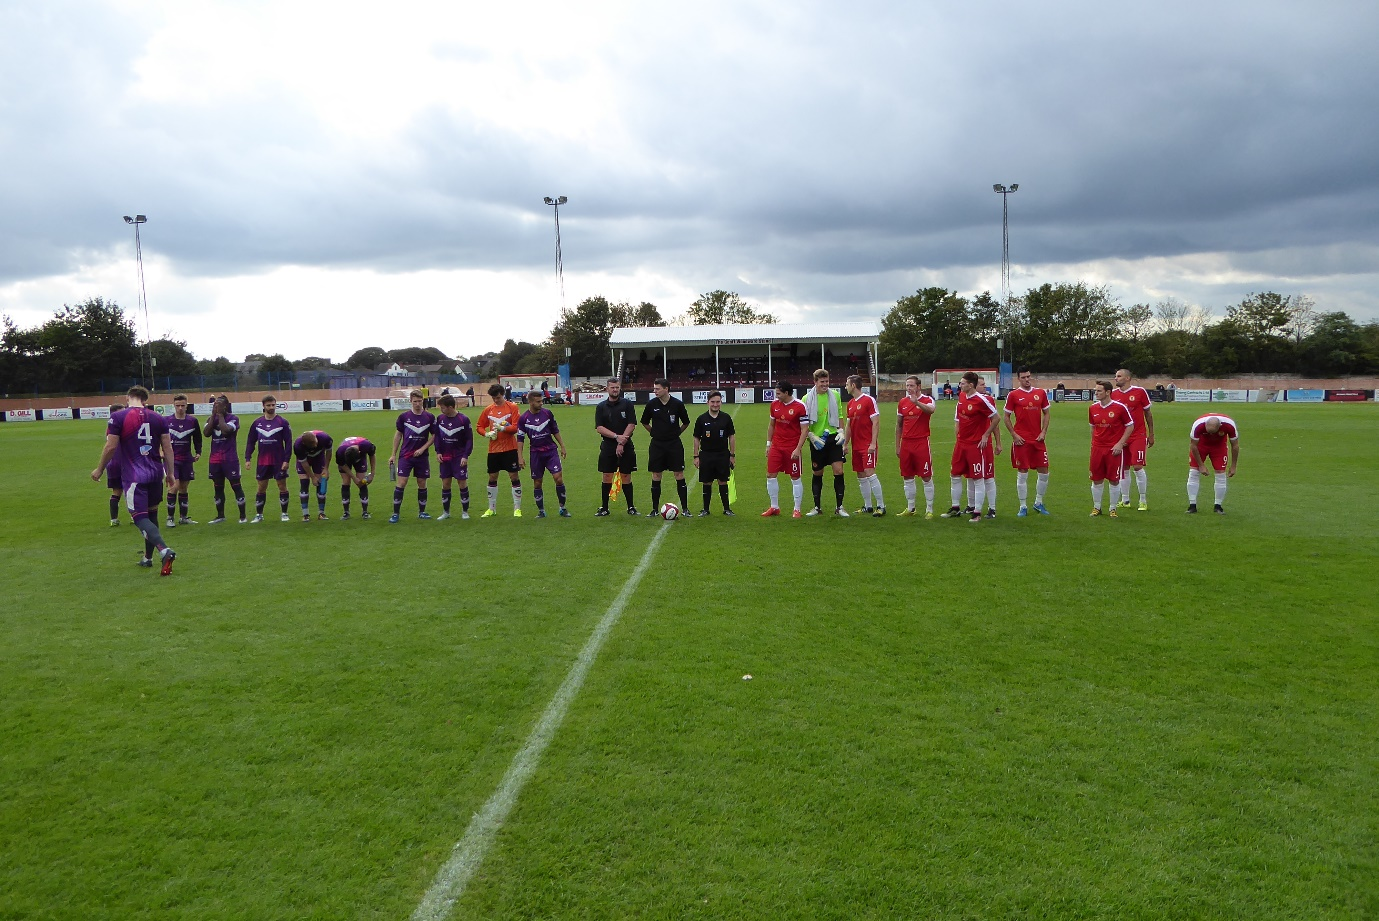 Today's line-up with Loughborough playing in purple